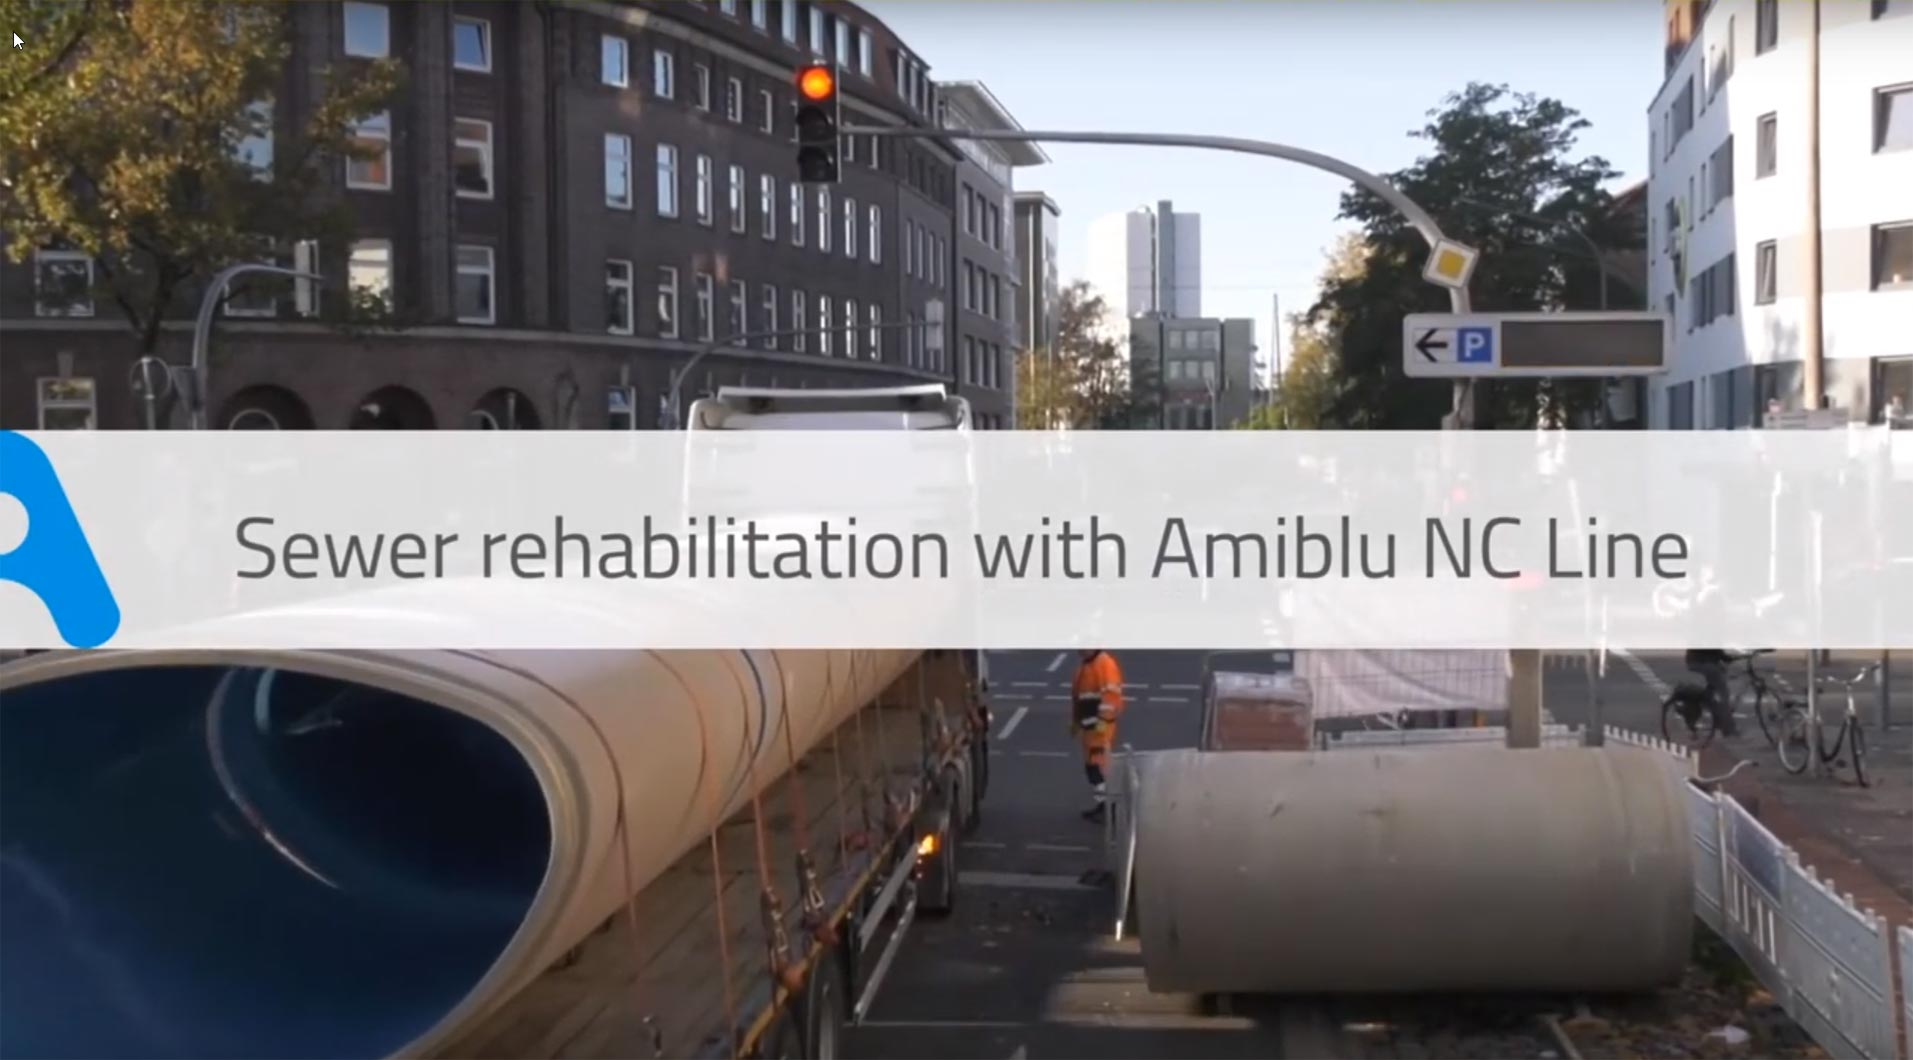 Sewer rehabilitation with Amiblu NC Line